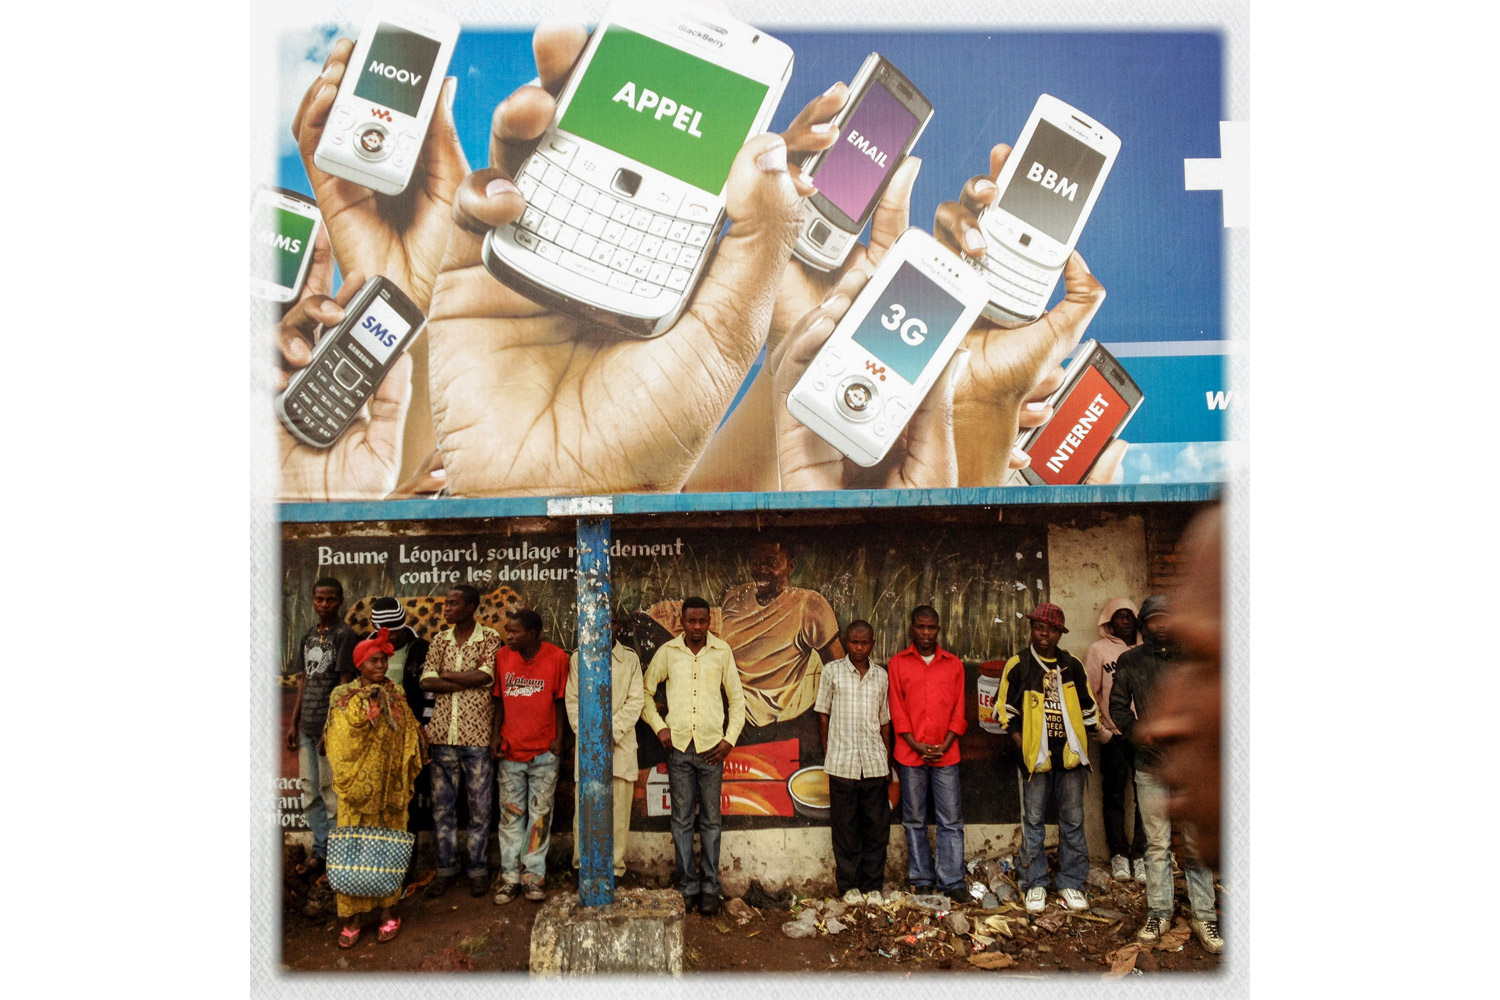 A mobile phone ad beside the road in Goma, DRC.